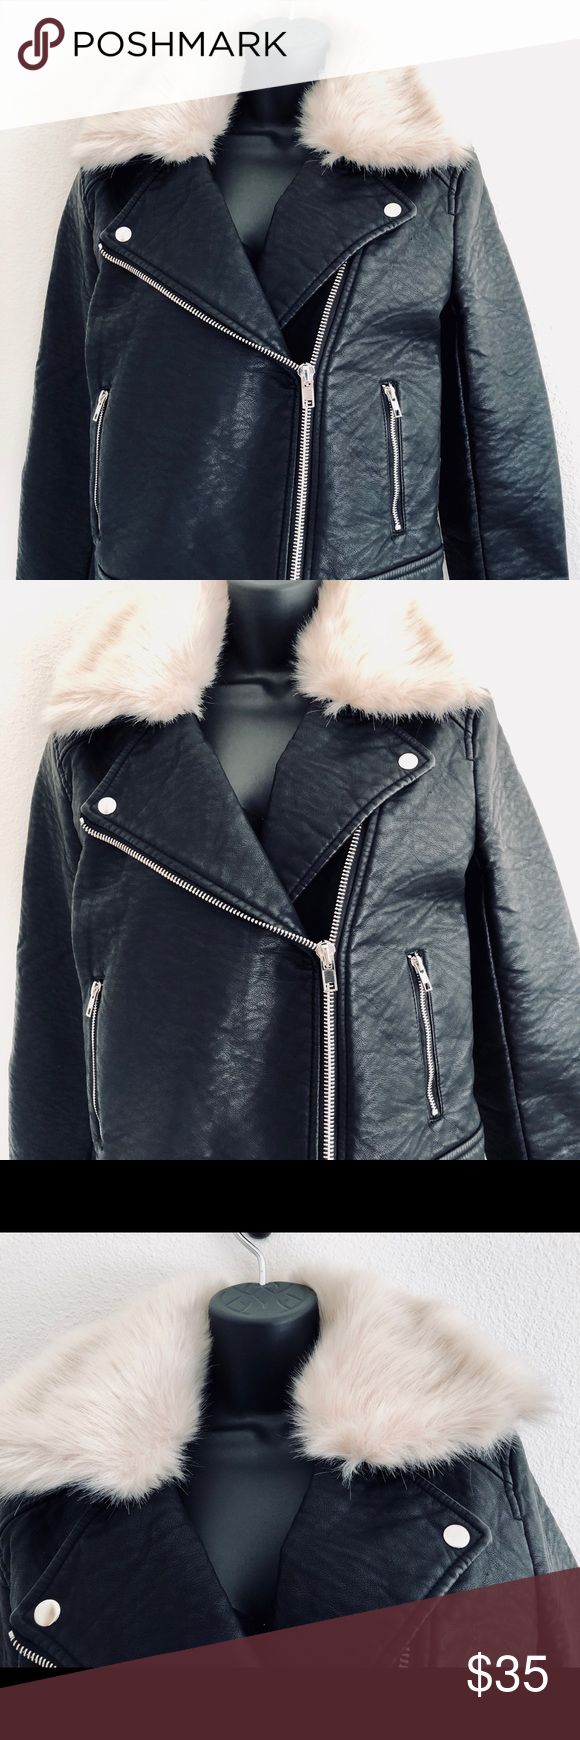 NWT Faux Leather Jacket With Faux Fur collar Super cute black faux leather jacket with faux fur Silver zip and button  Long sleeve  Satin lining  Two pockets in front Forever 21 Jackets & Coats